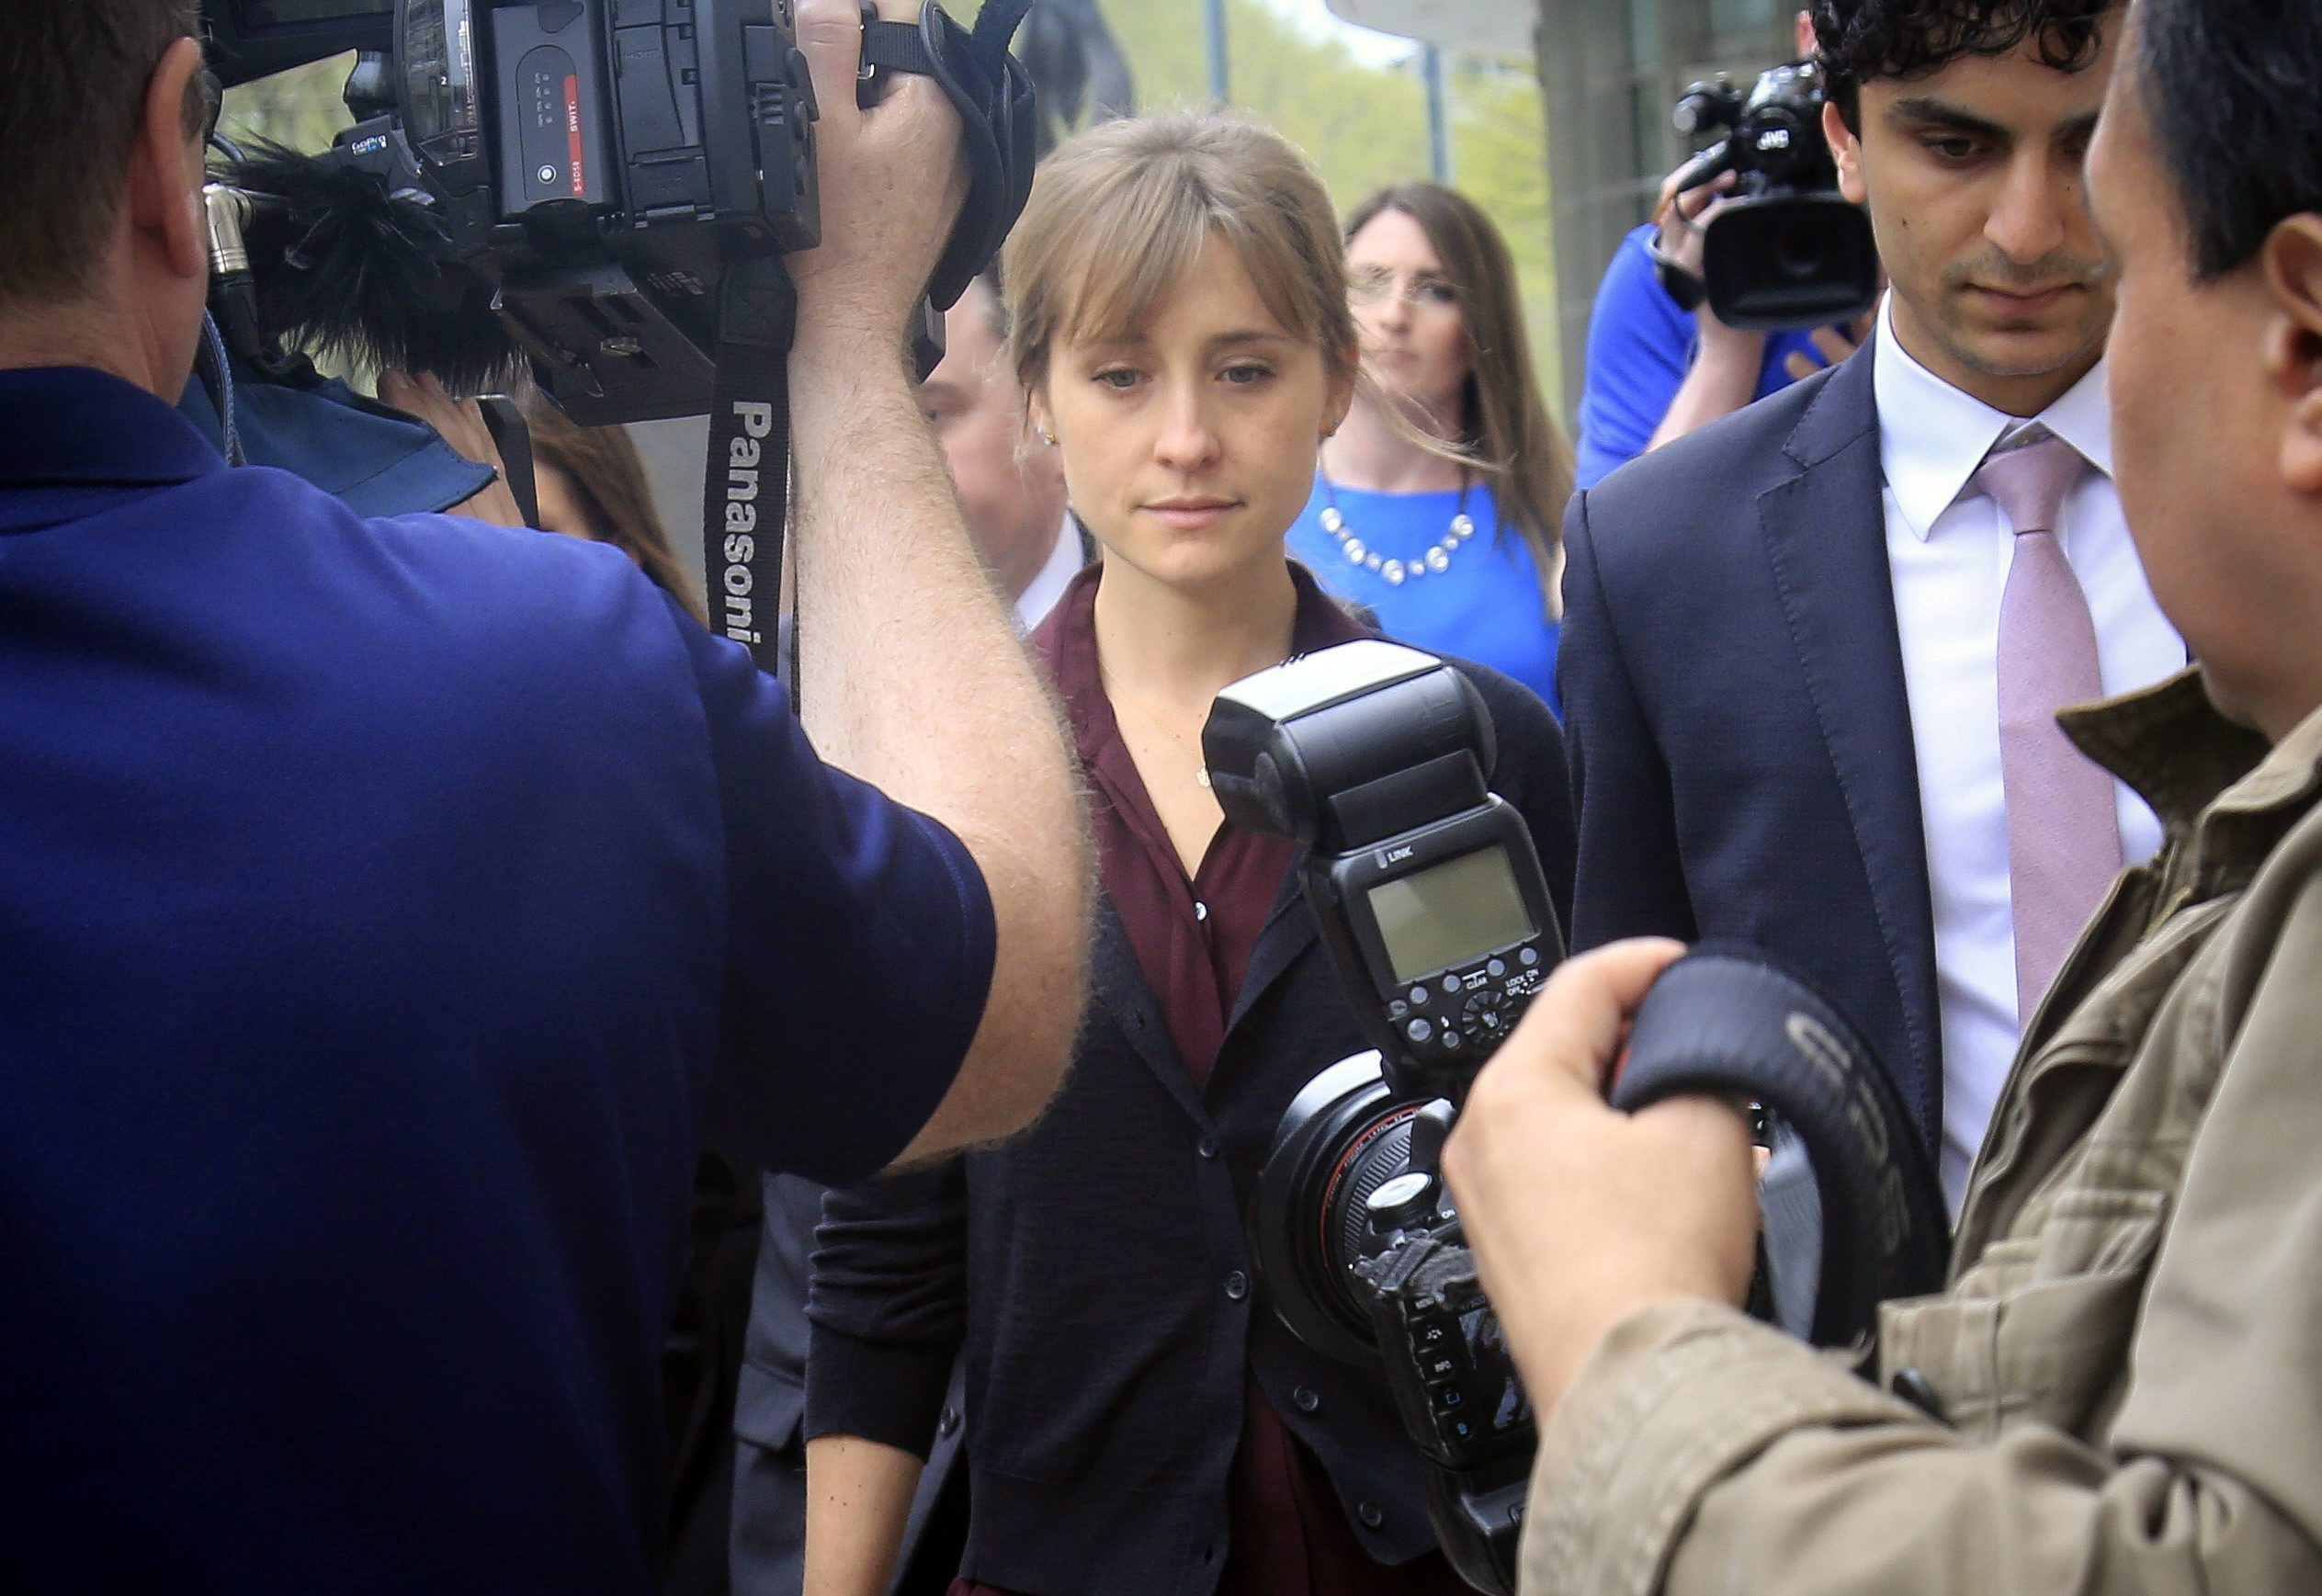 Mack leaves after a court hearing in New York City. She and Raniere are charged with coercing women who joined NXIVM into becoming part of a secret sub-group where they were allegedly expected to act as 'slaves' and engage in sex acts. (Bebeto Matthews/Associated Press)